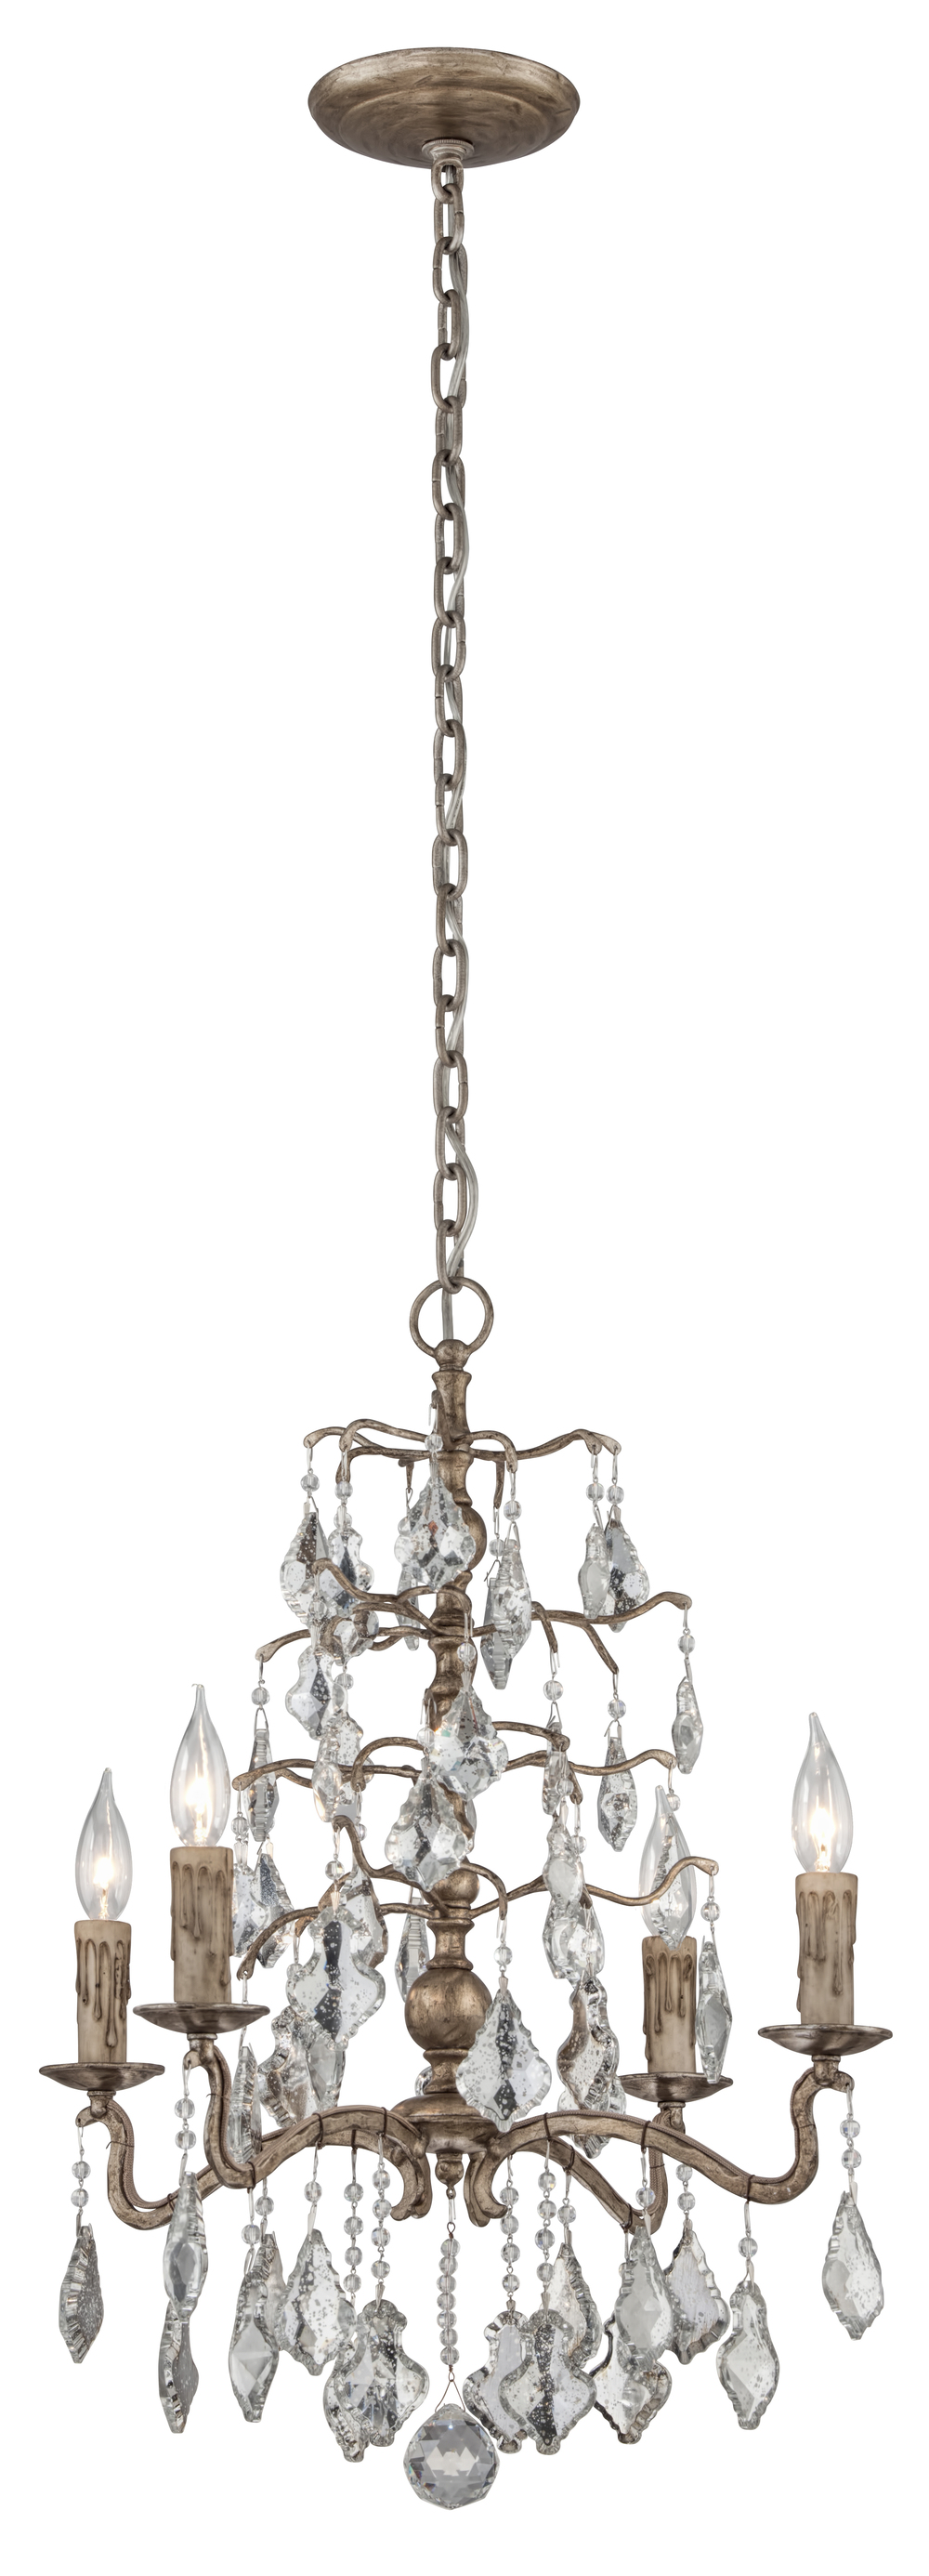 Troy-Corbett - Sienna Four Light Chandelier